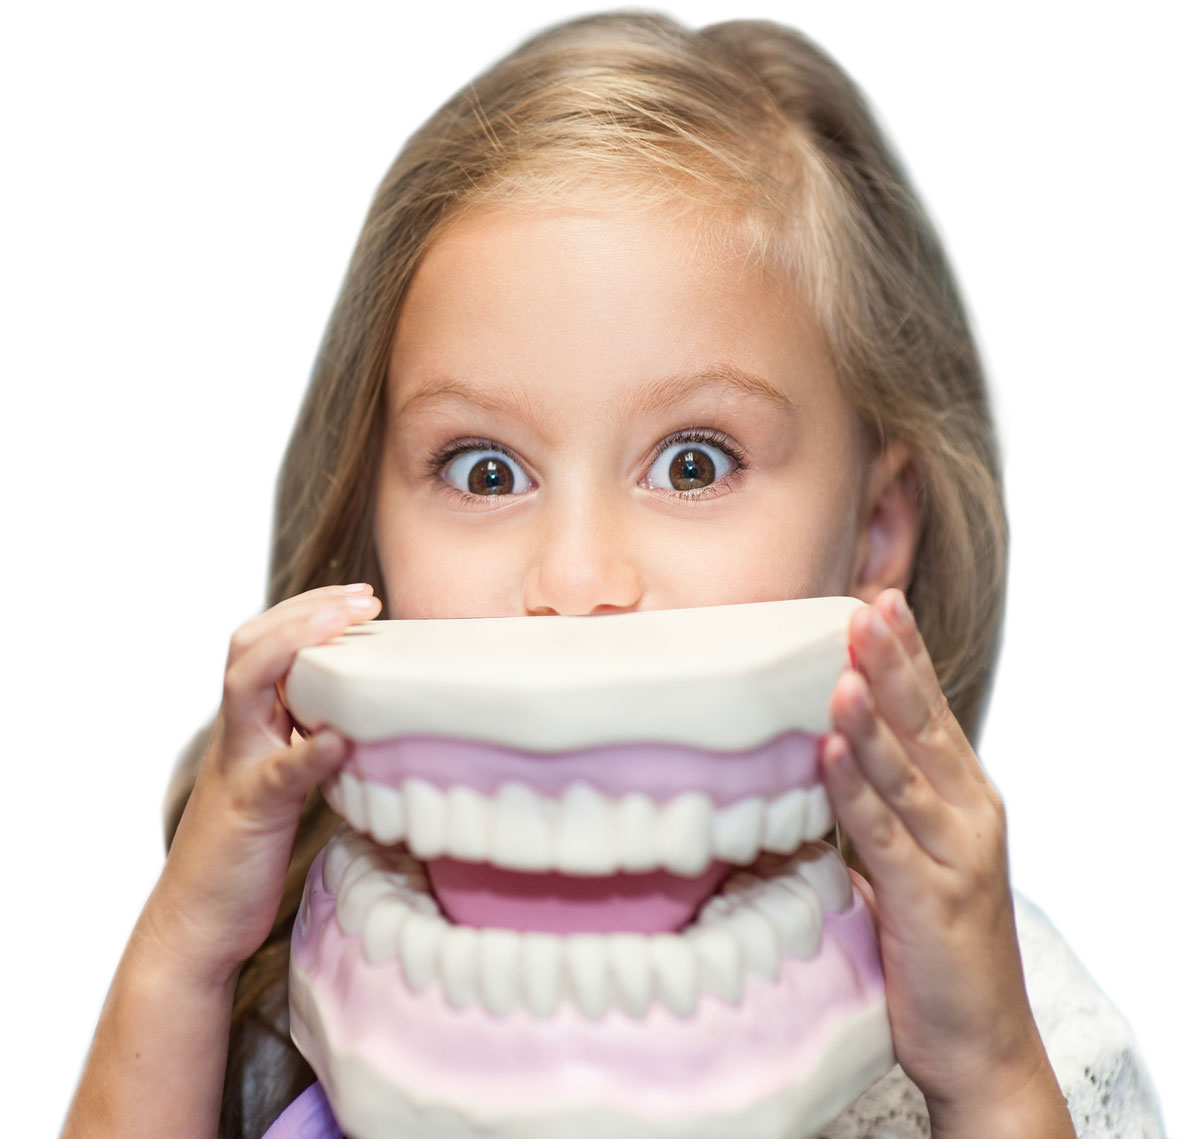 pediatric dentist vienna va